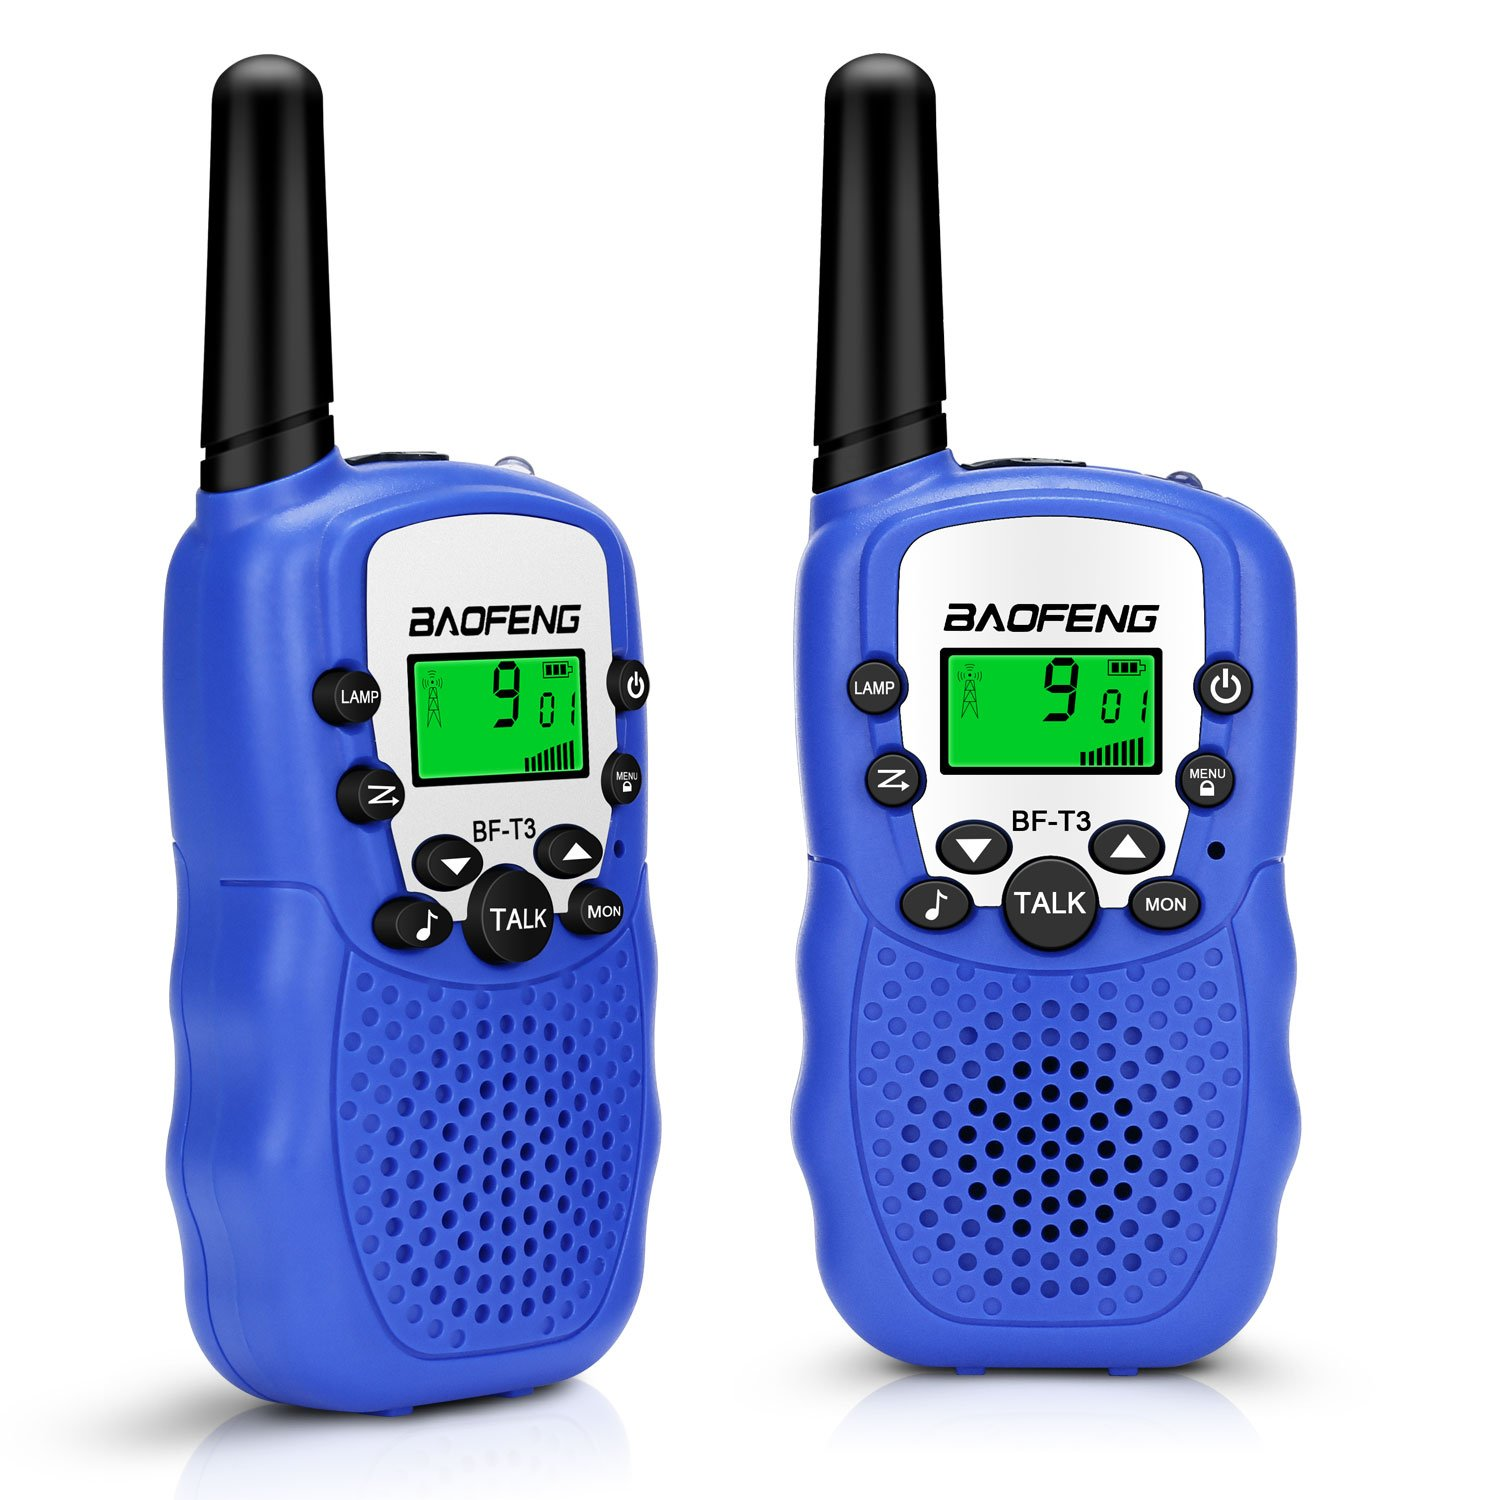 GHB Kids Walkie talkies, 22 Channel Walkie Talkies for Kids, LCD Screen 3 Miles up to 5 Miles FRS/GMRS Updated Screen Lock Function (Pair) (Blue) by GHB